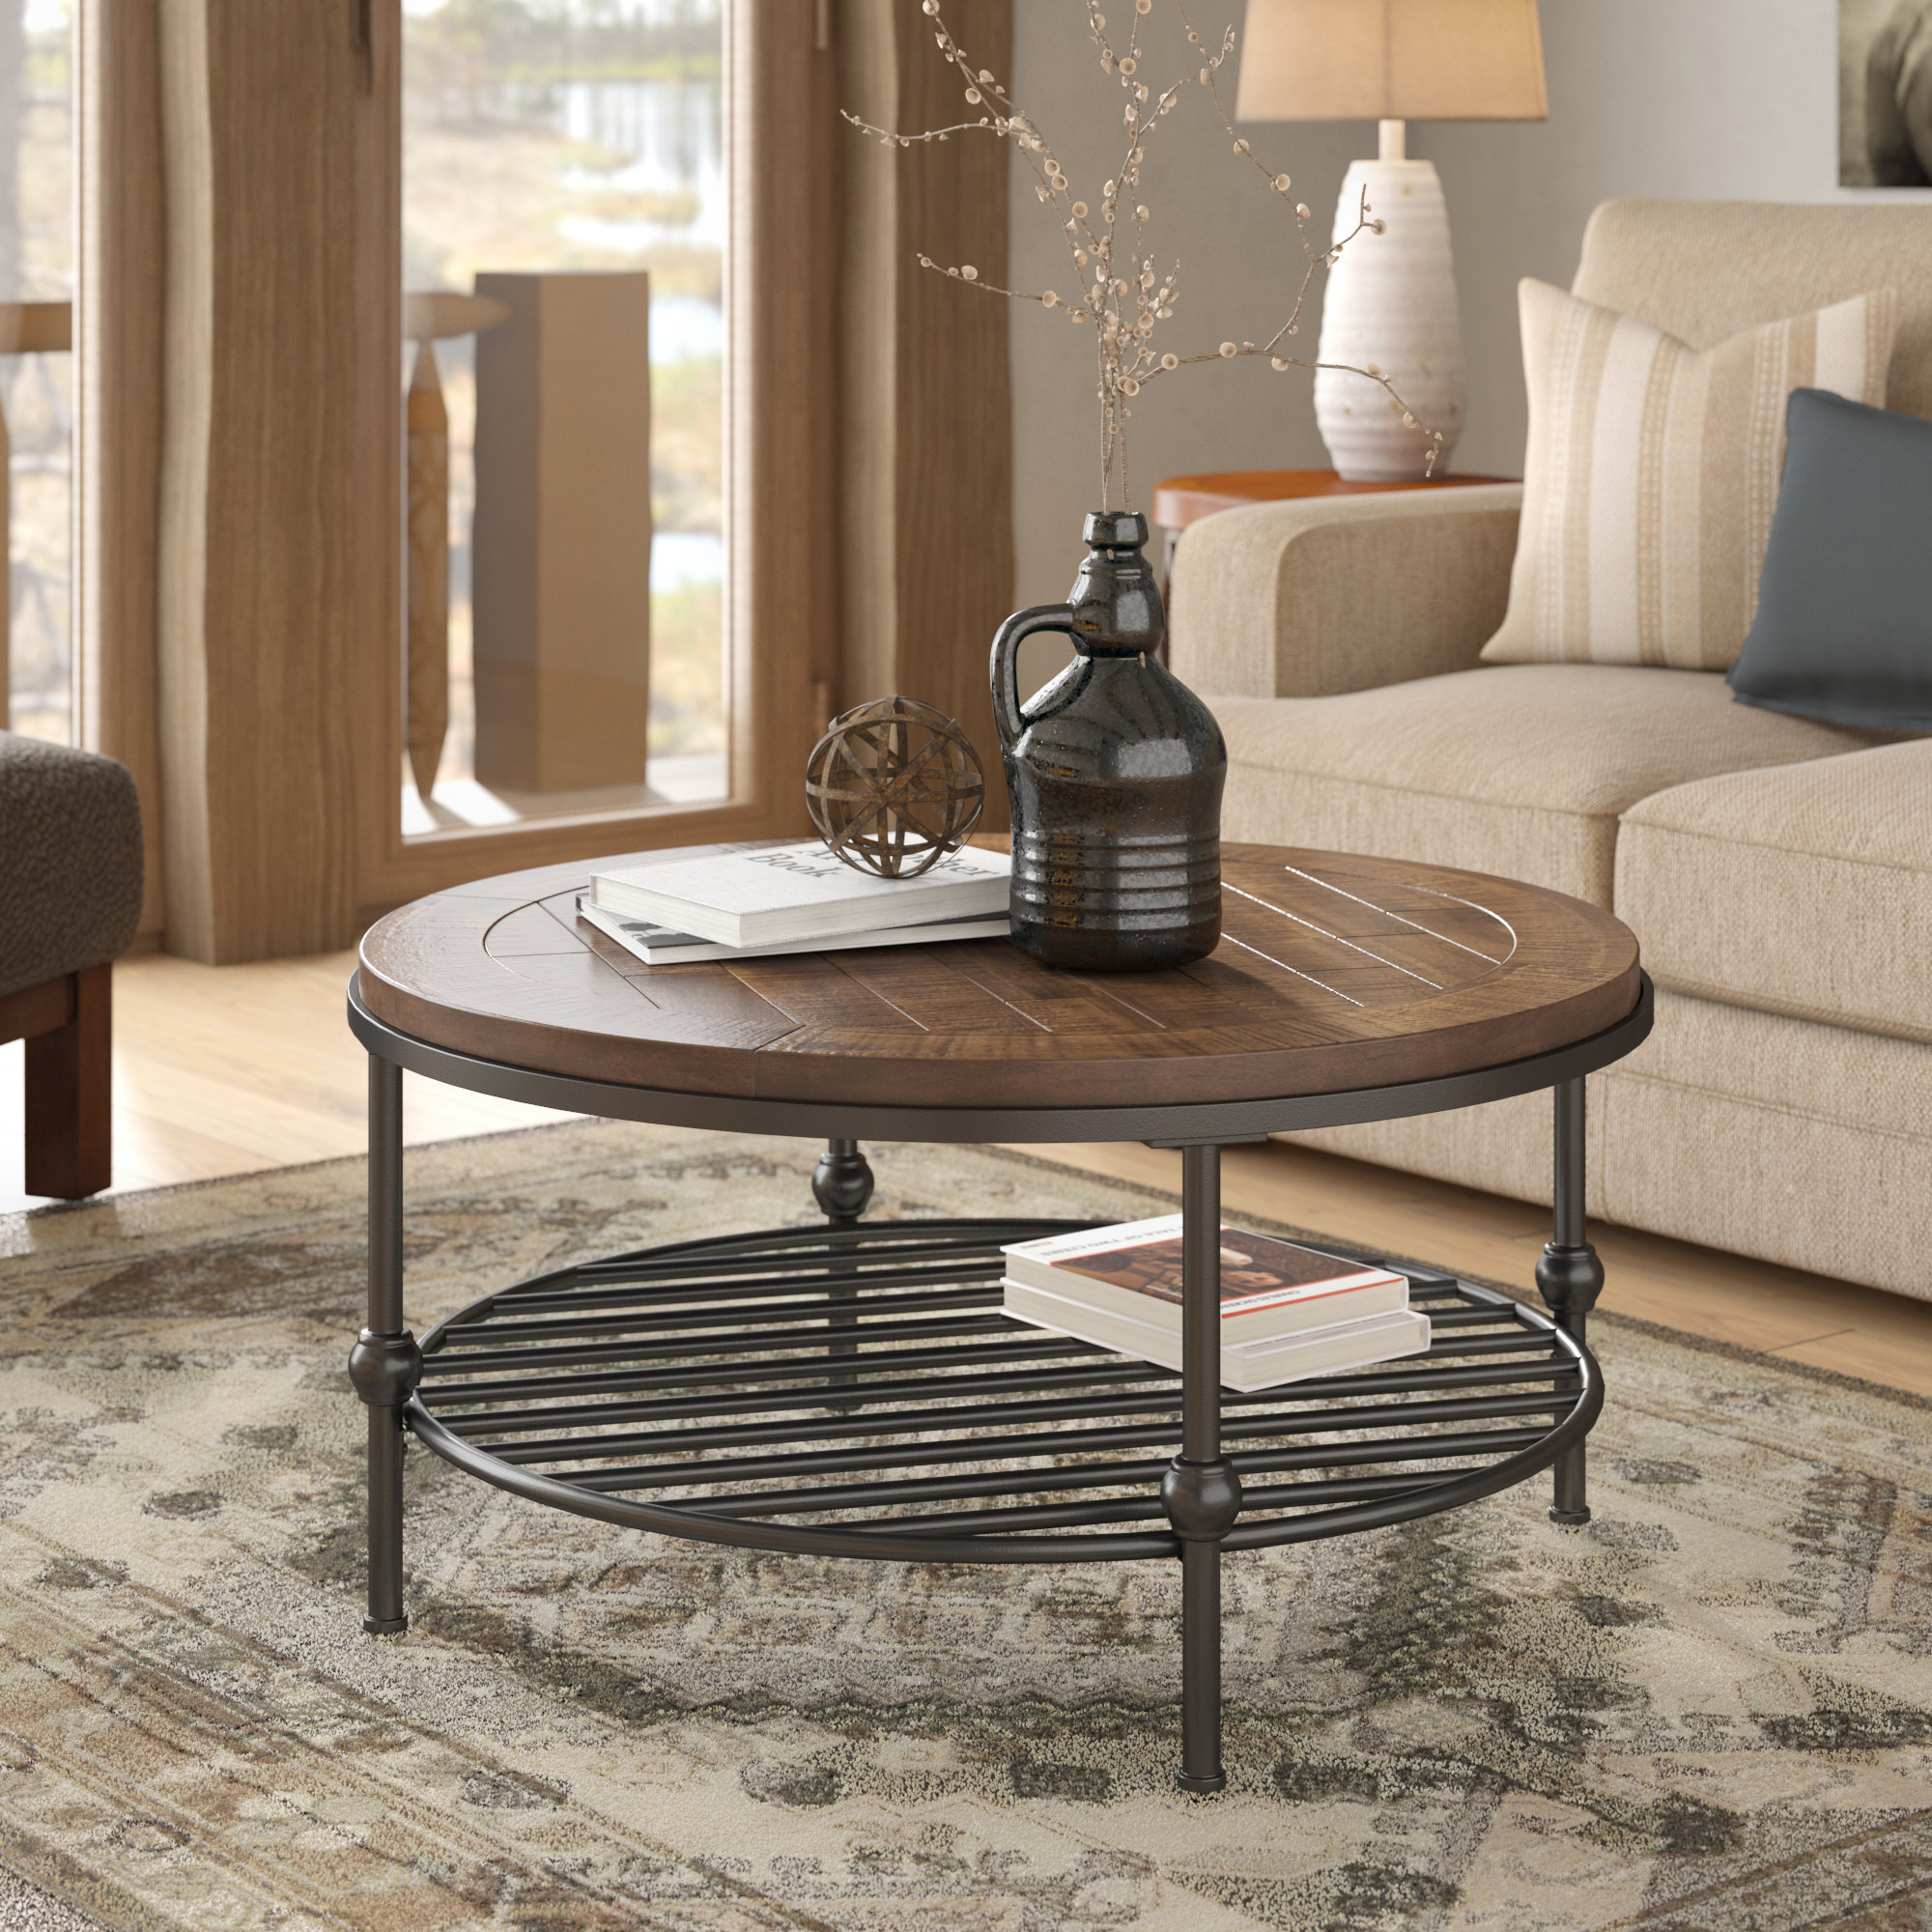 hendrix coffee table reviews birch lane room essentials mixed material accent gaming foot long console garden occasional tables farmhouse end square for mid century dining chairs